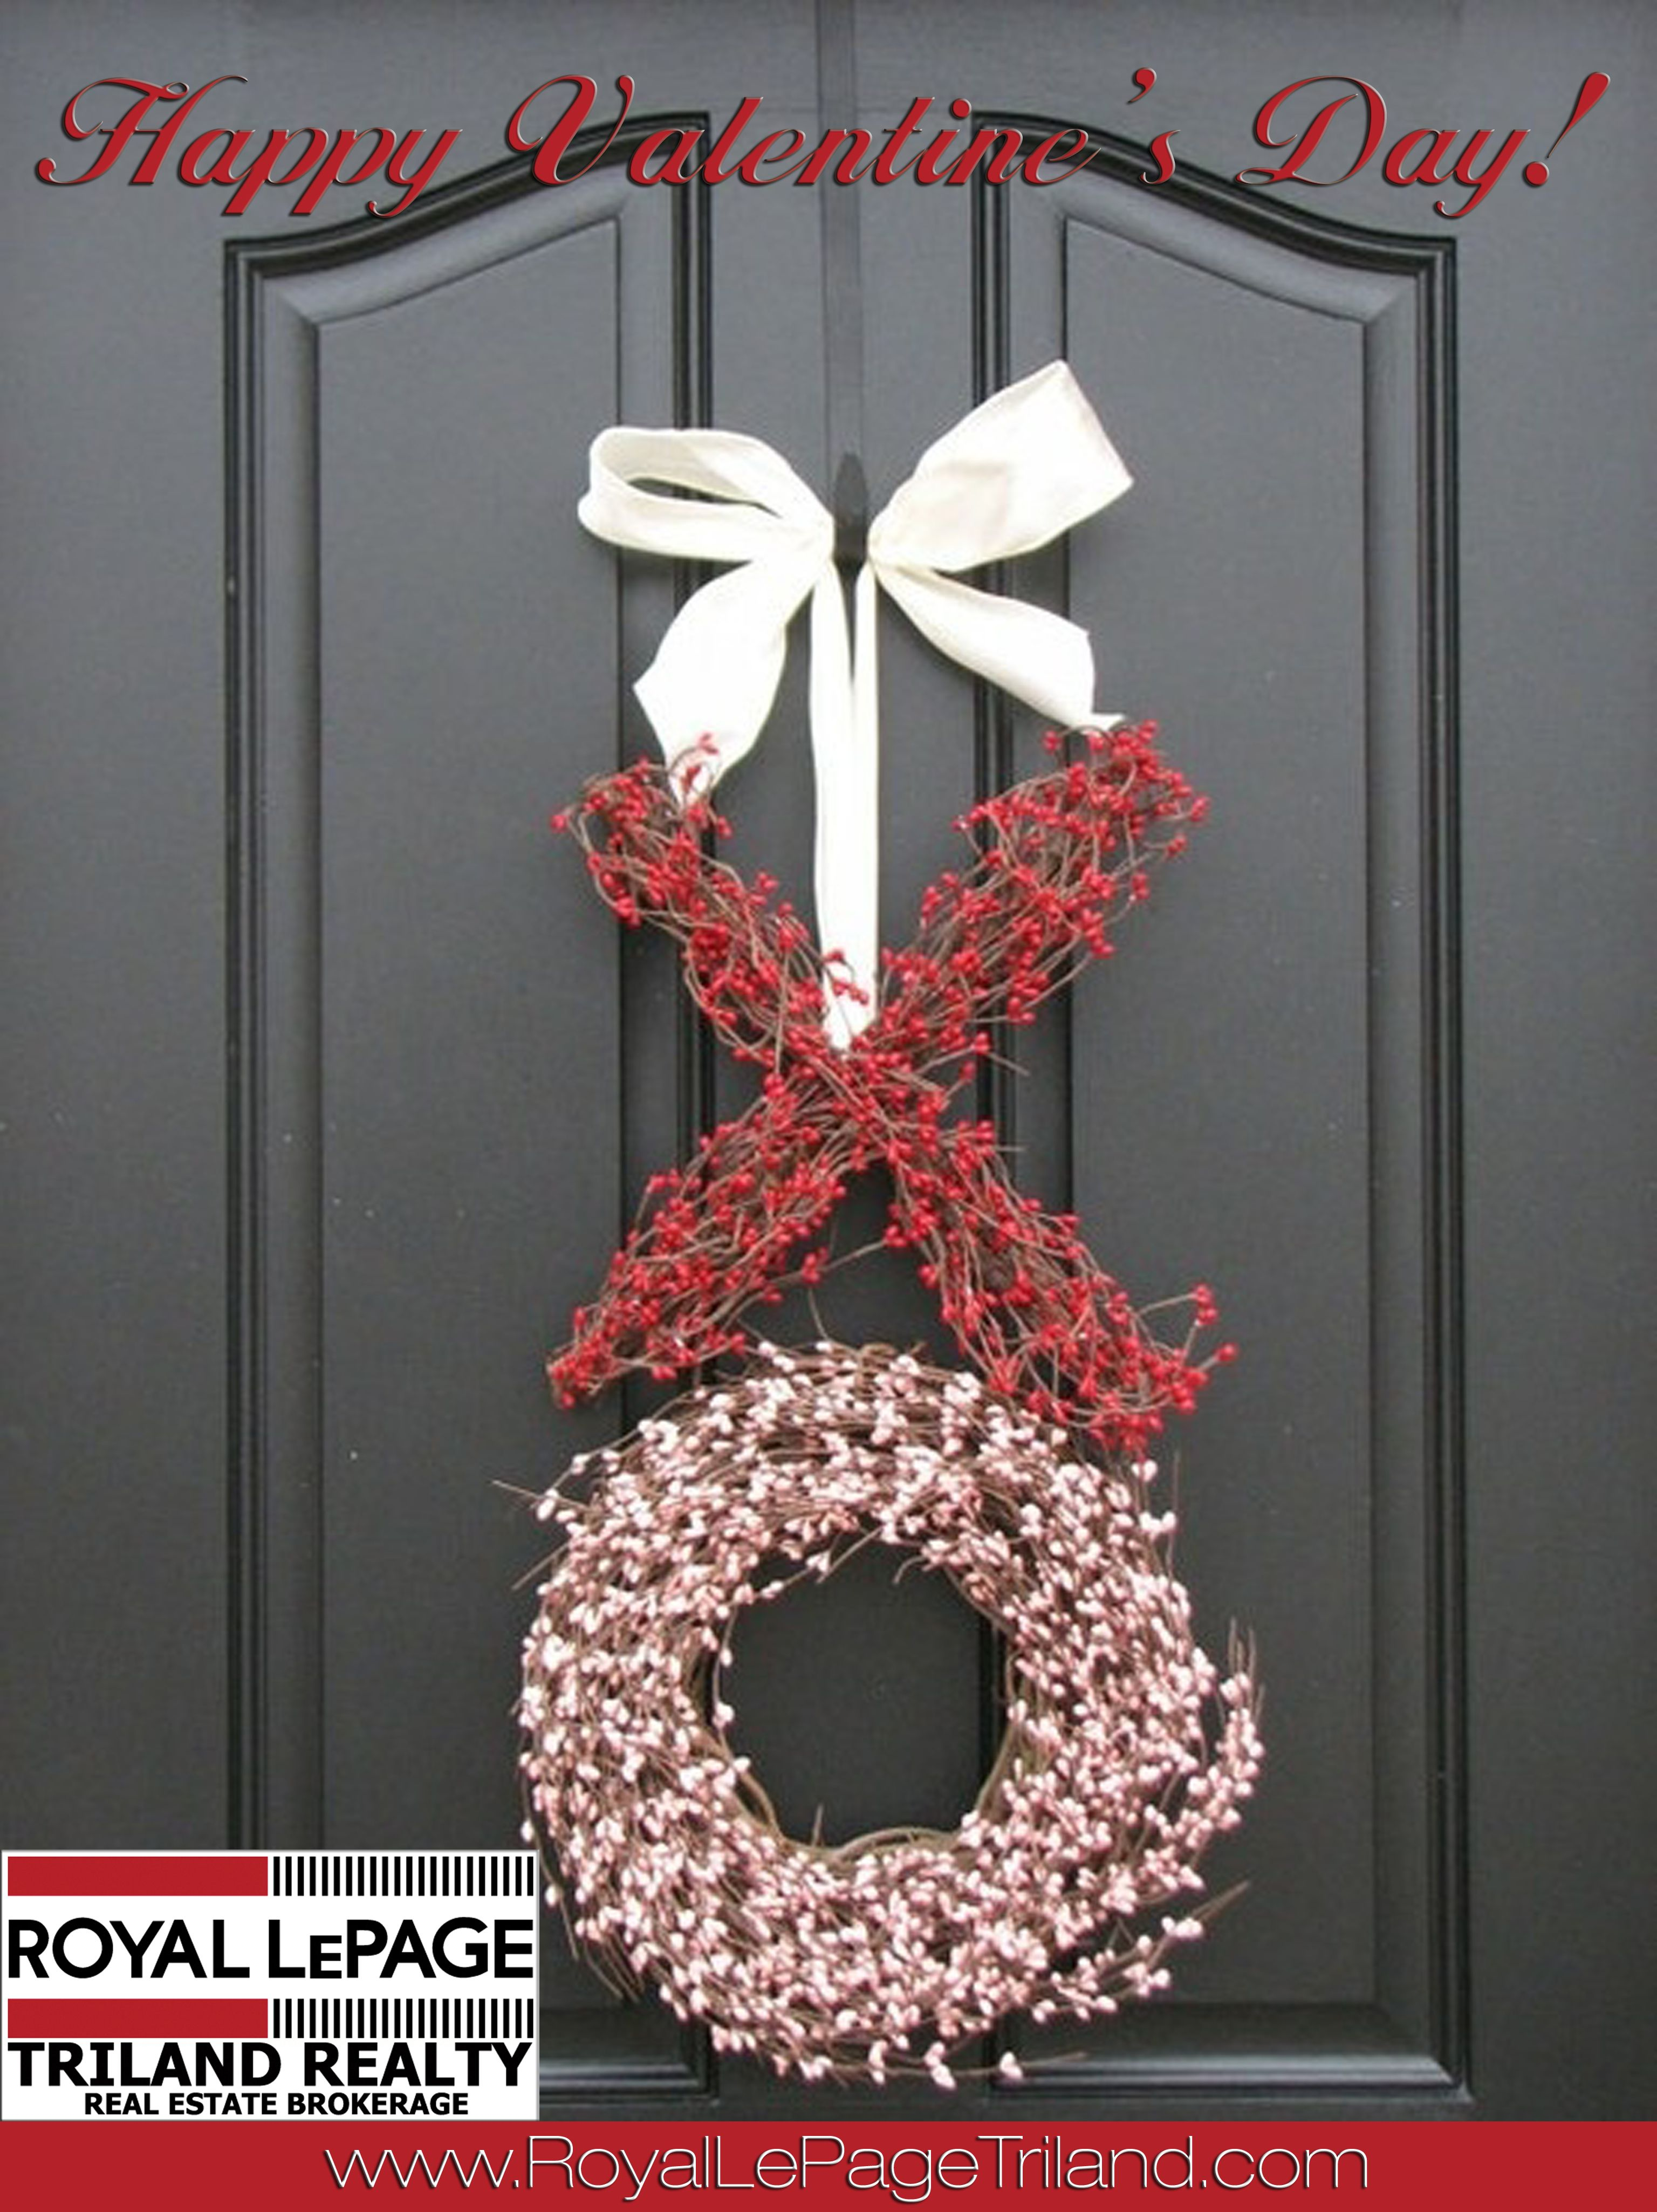 Royal Lepage Triland Realty Happy Valentines Day London Ontario